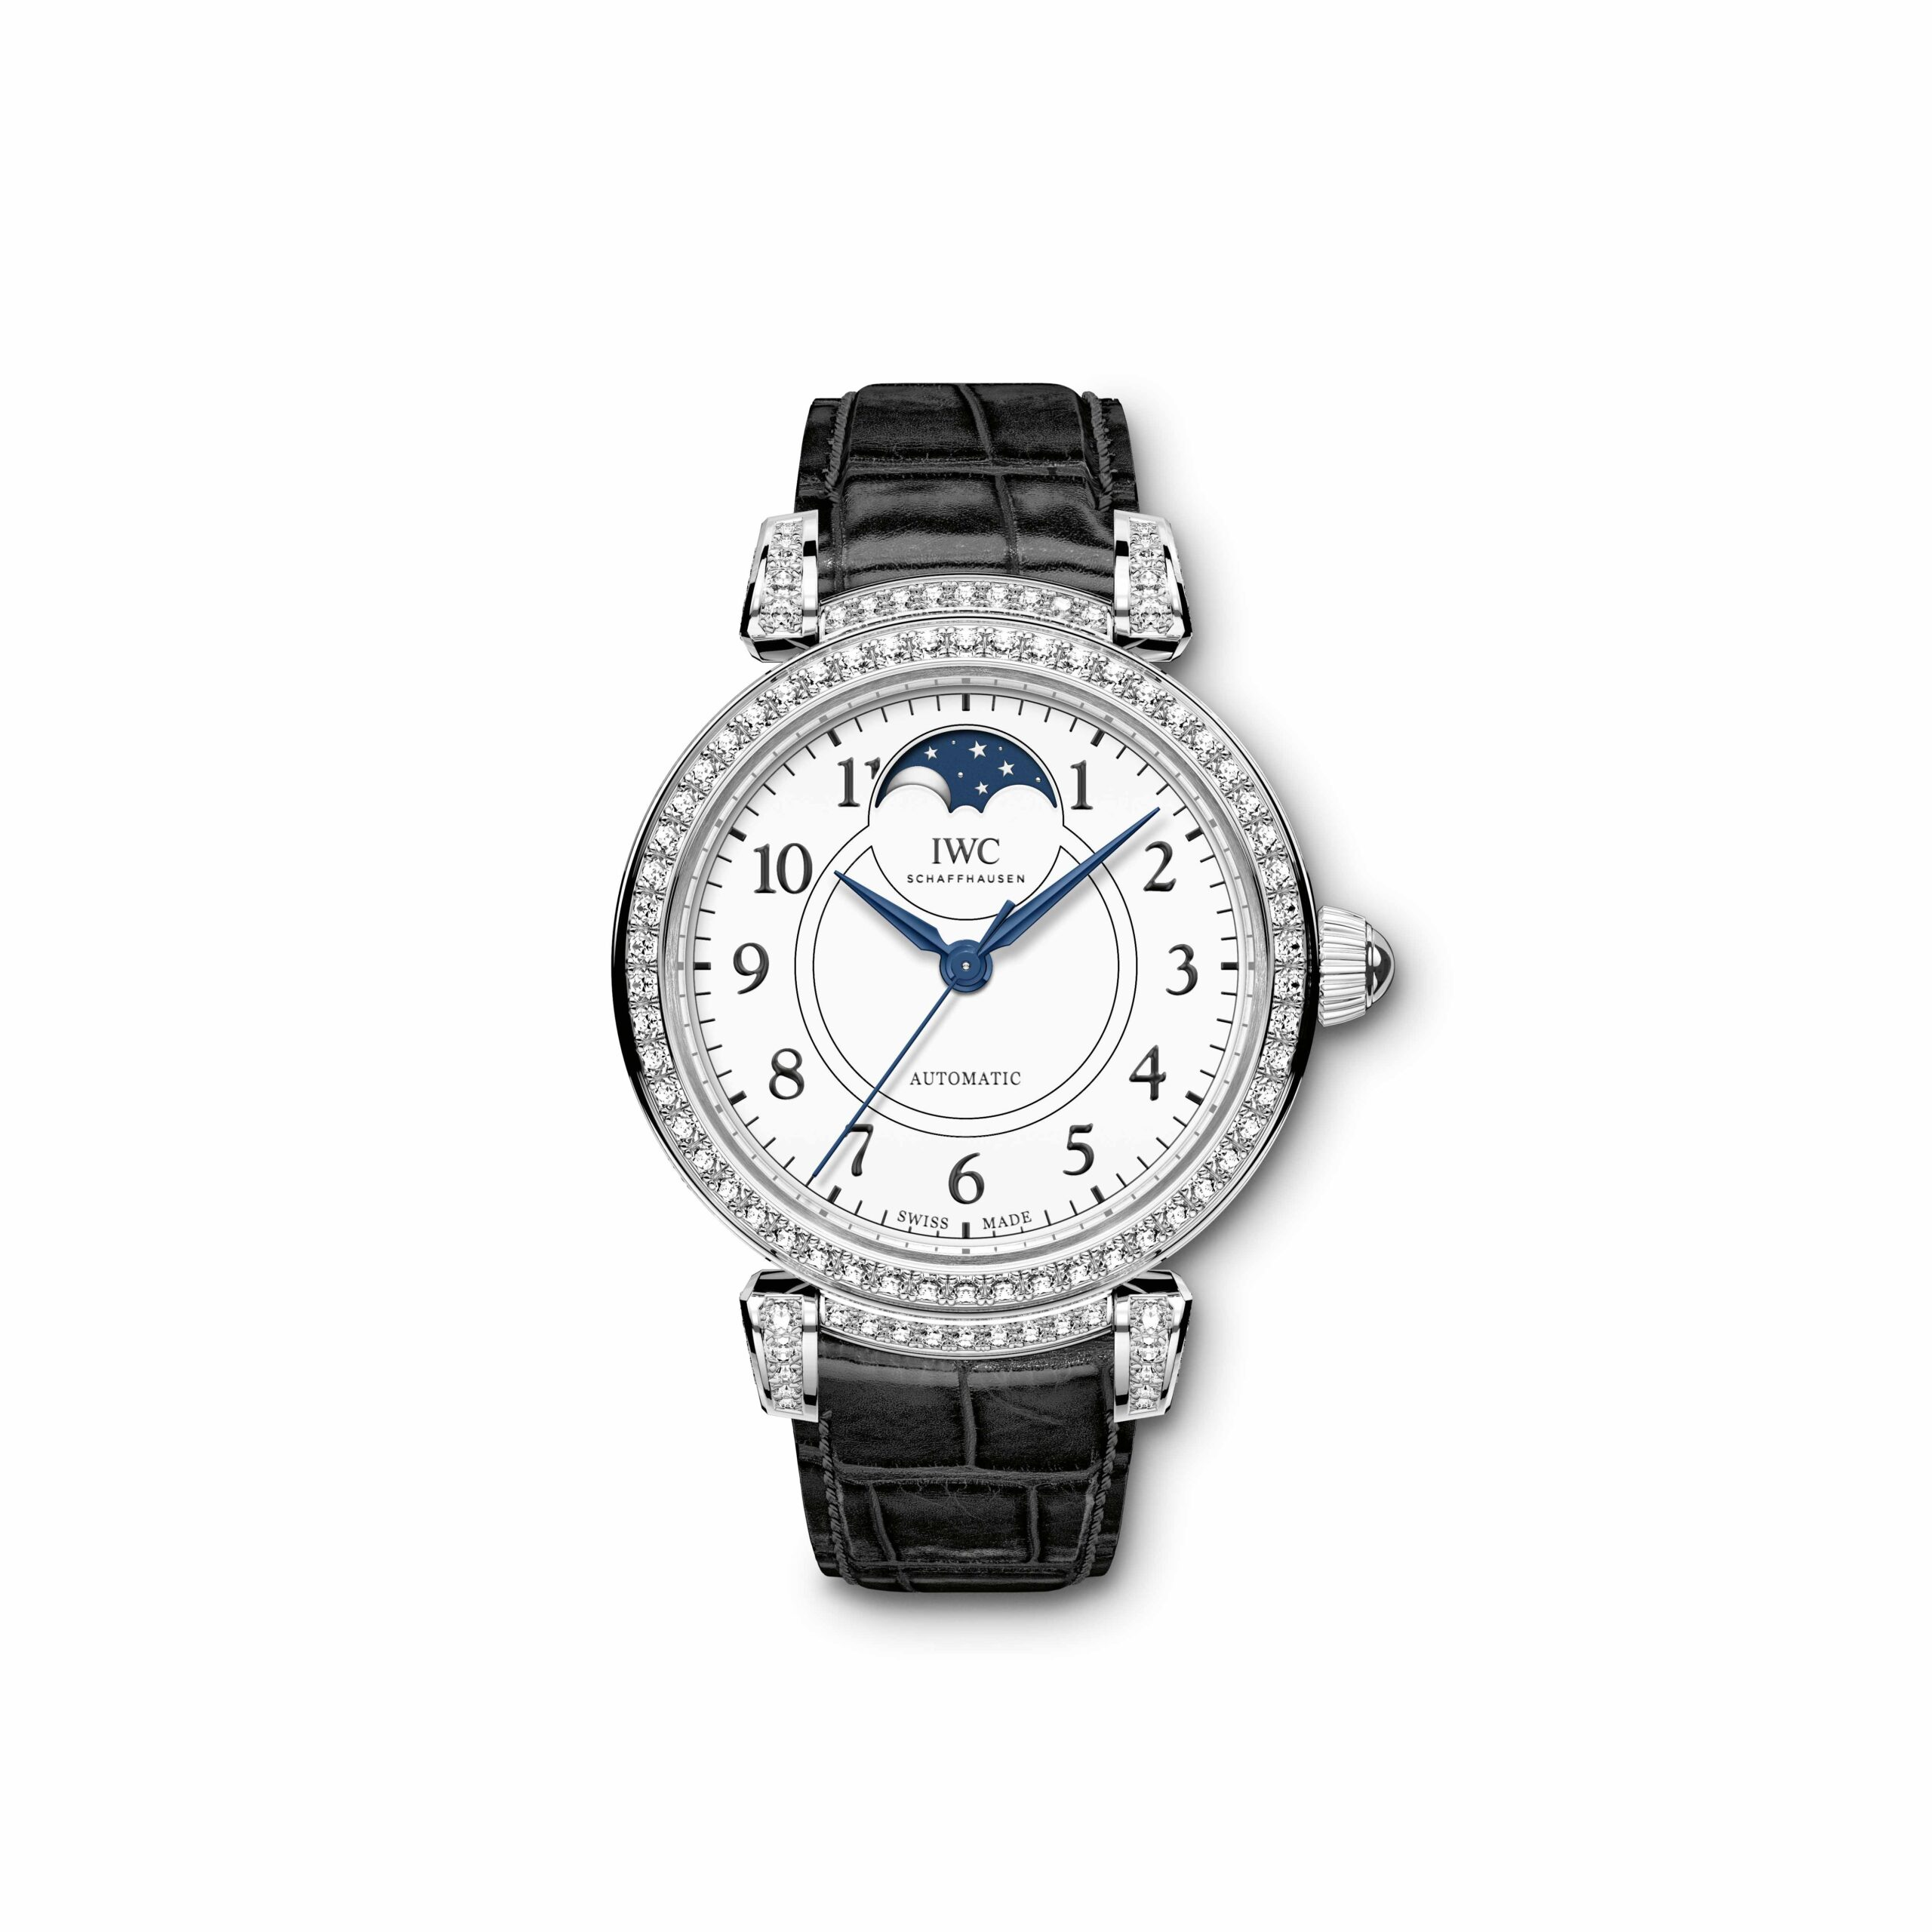 "IWC Da Vinci Automatic Moon Phase 36 Edition ""150 Years"" (Ref. 4593) The watches' case and moving lugs are paved with 206 pure white diamonds amounting to 2.26 carats."